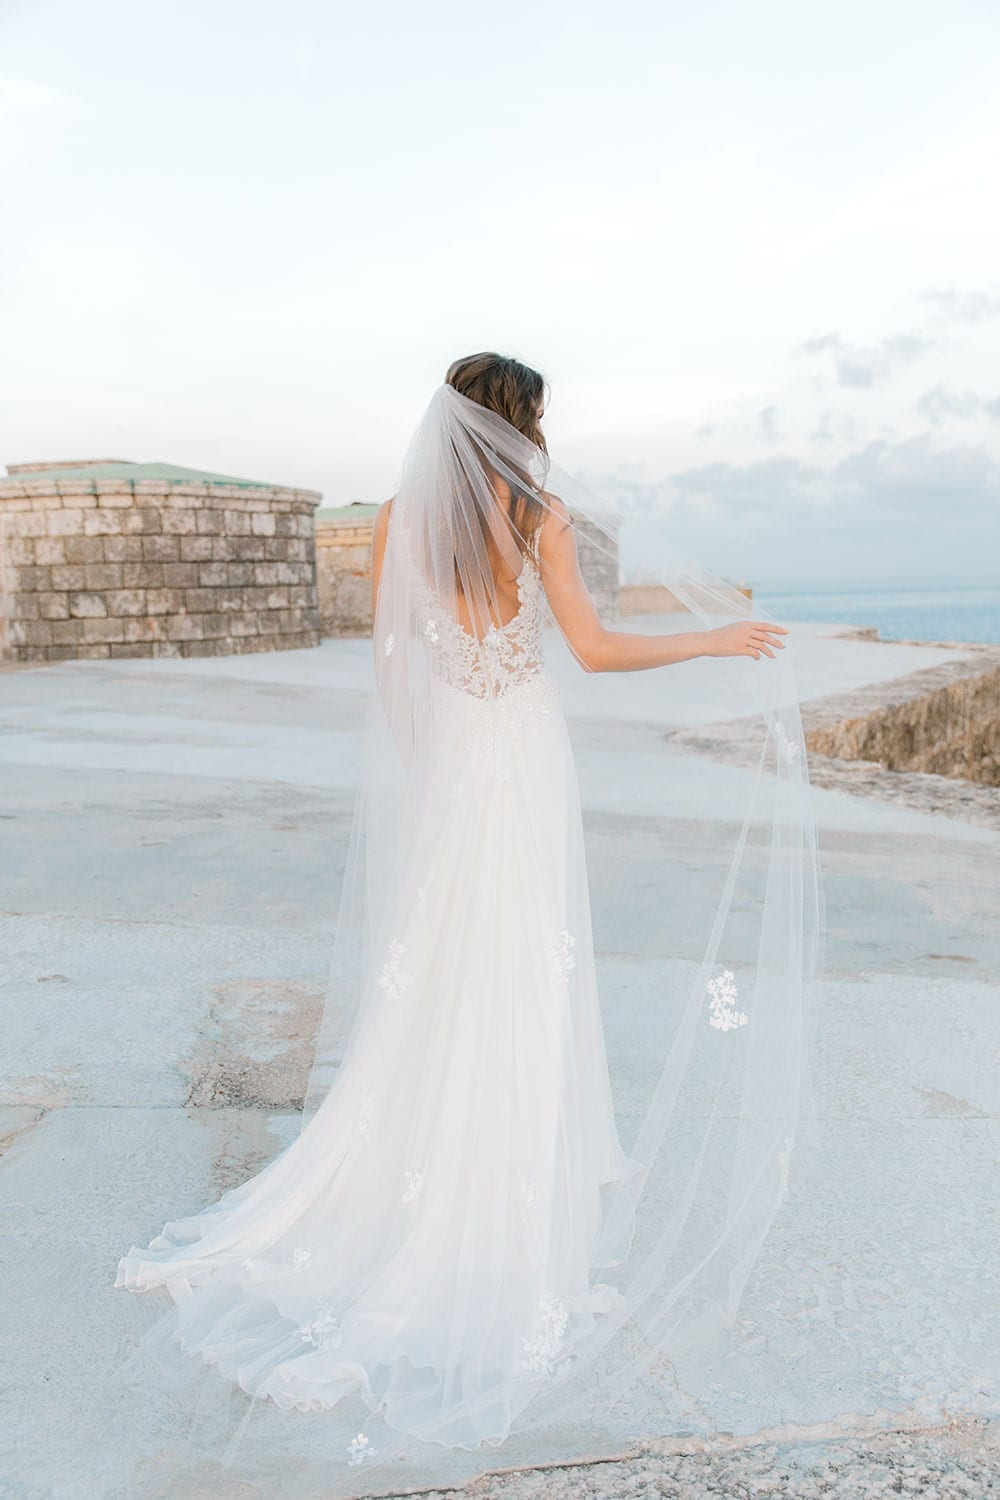 Model wearing Vinka Design Clara Wedding Dress, a Silk Chiffon Beaded Lace Wedding Gown next to the ocean in Havana facing away with dress and veil flowing